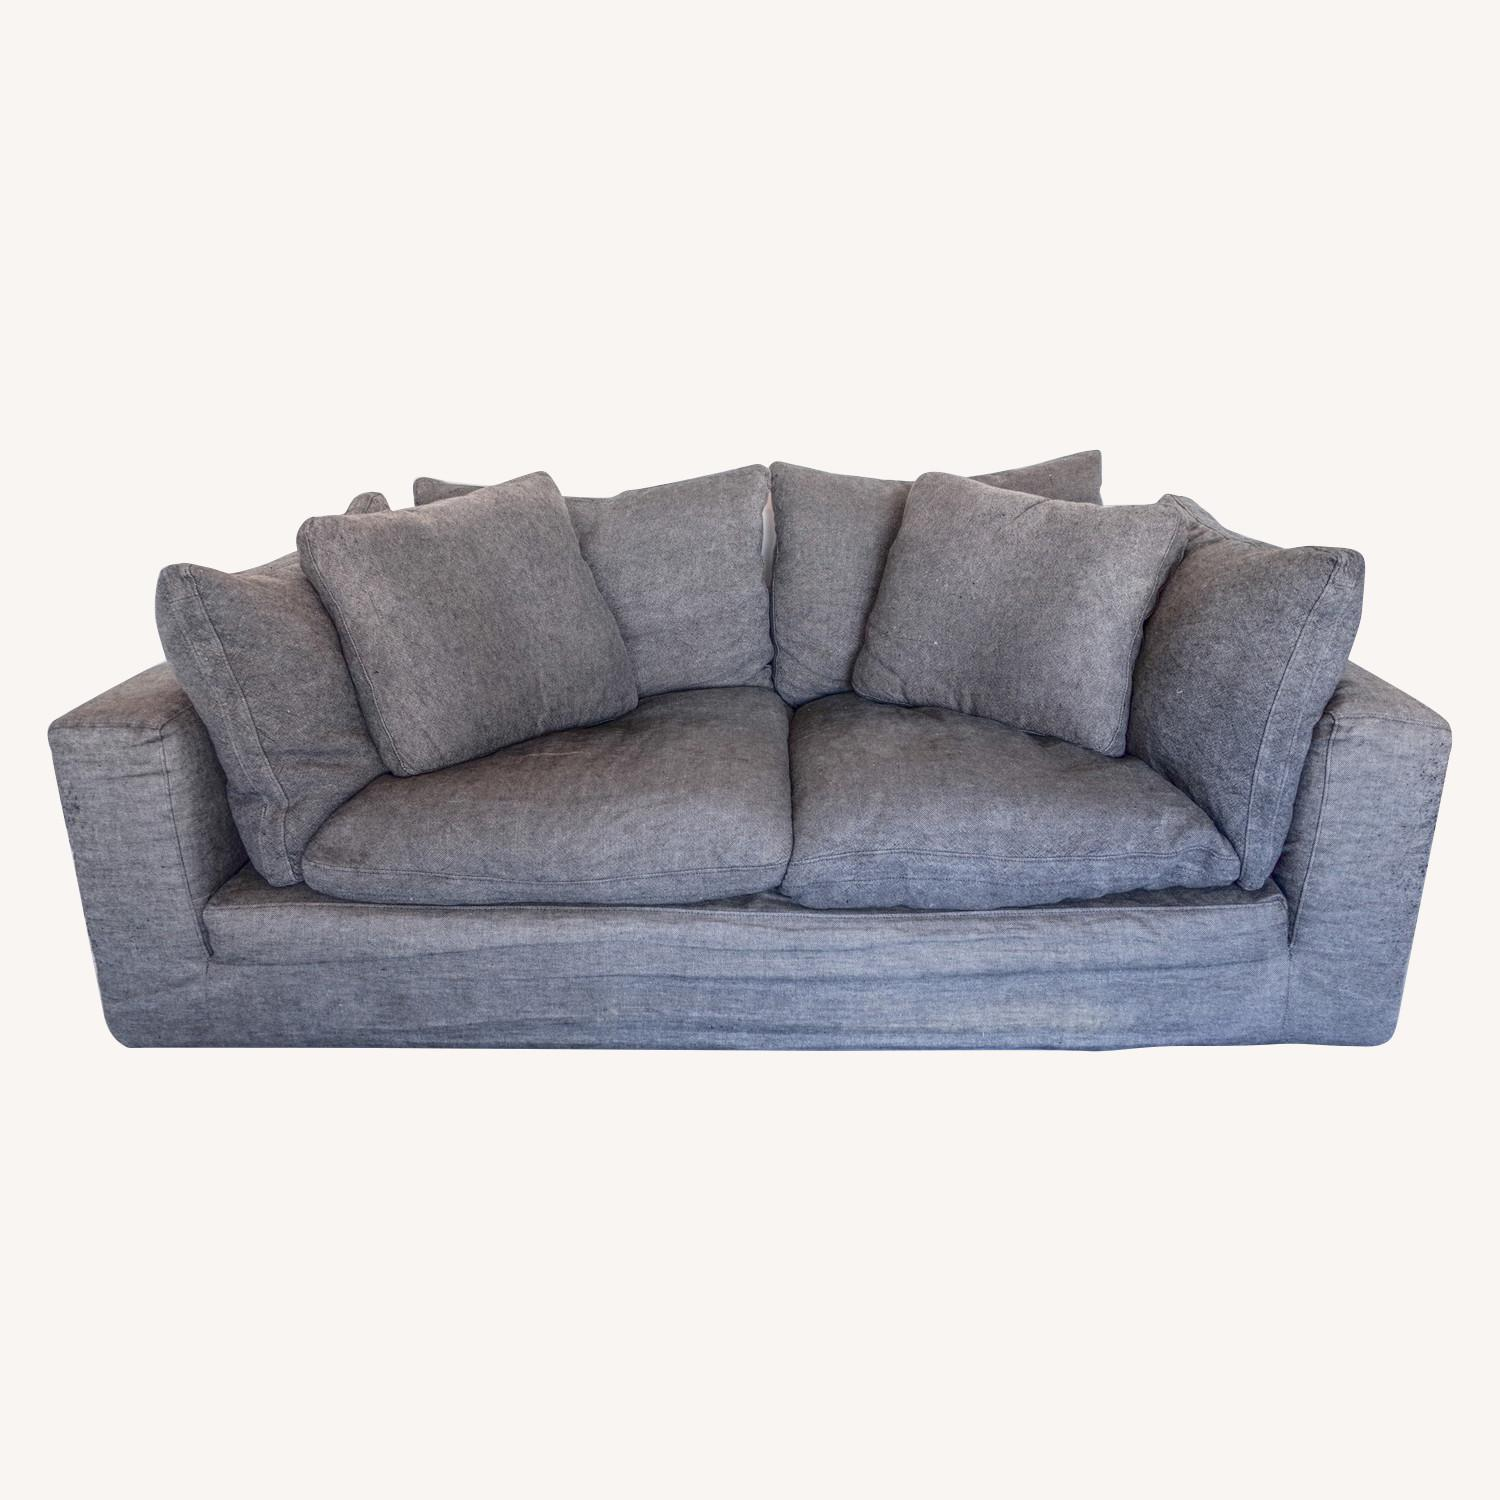 Restoration Hardware Cloud 2 Seat Cushion Sofa - image-0